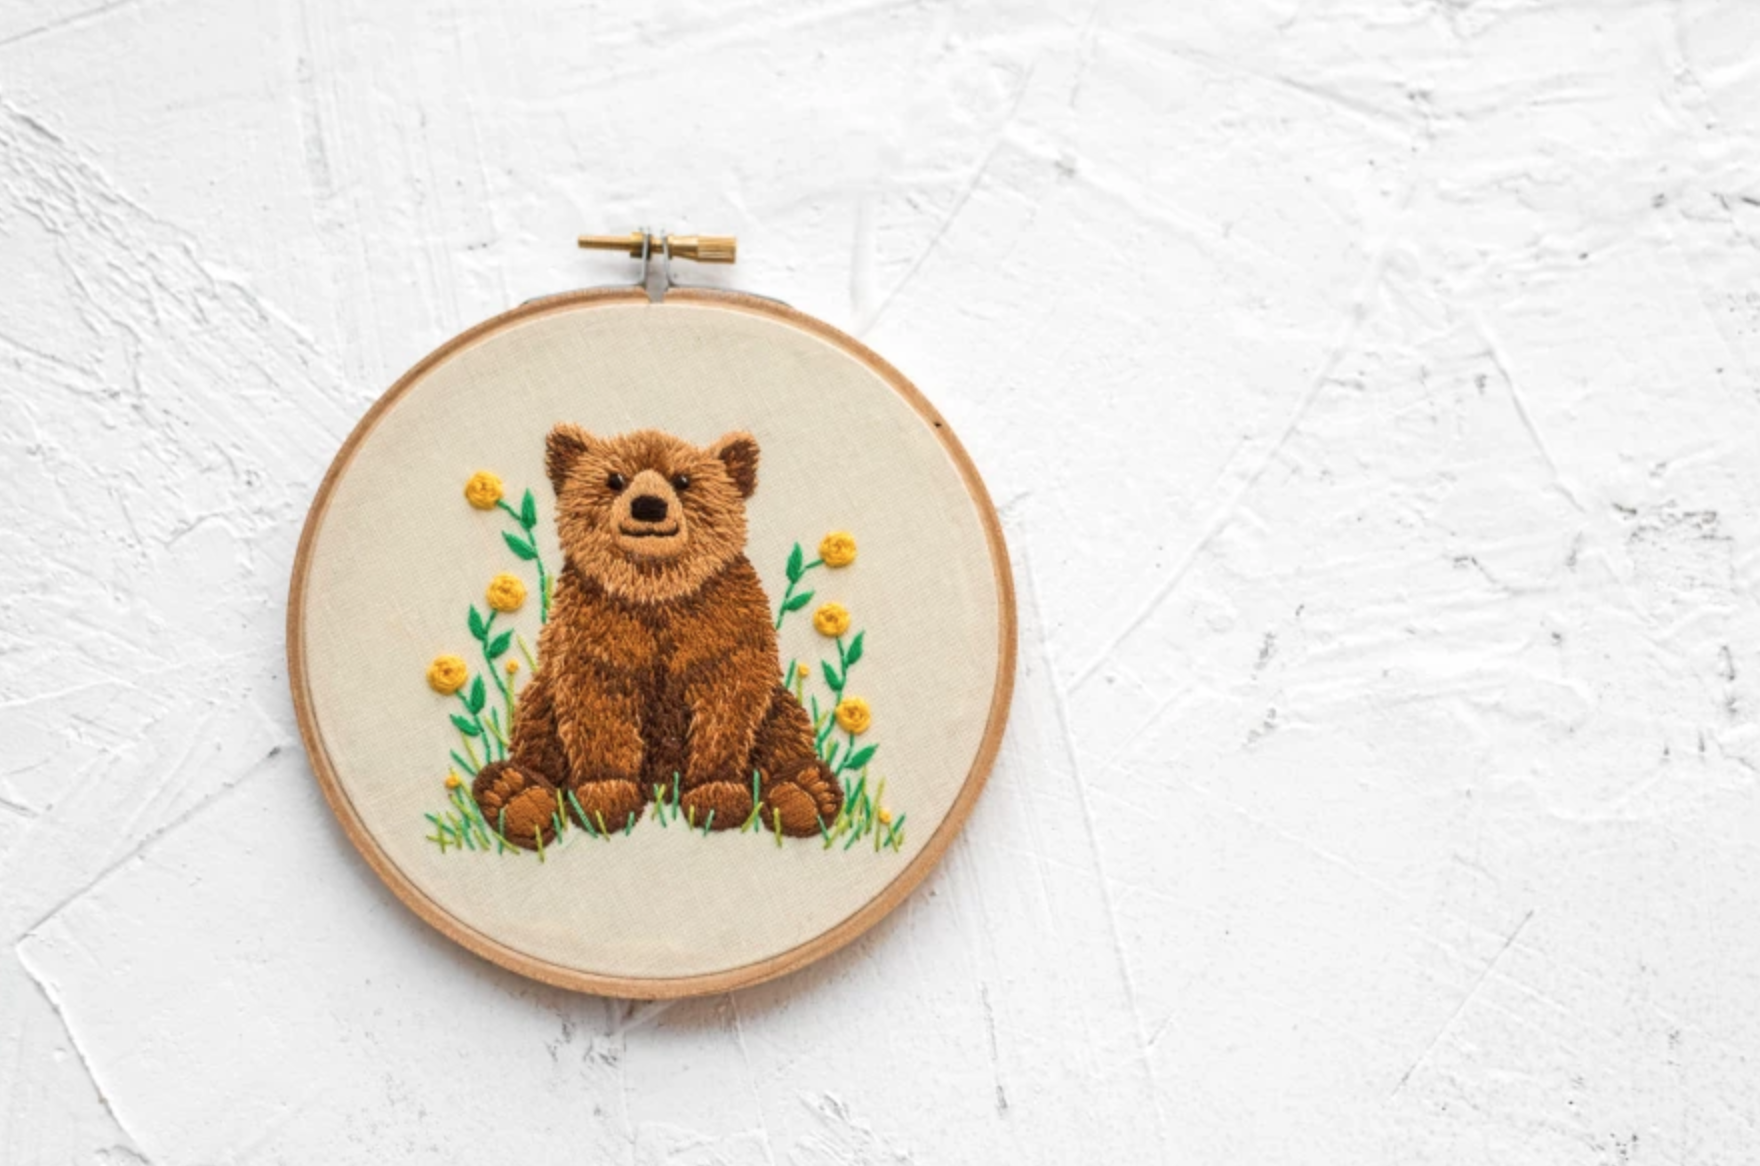 bear cub embroidery hoop